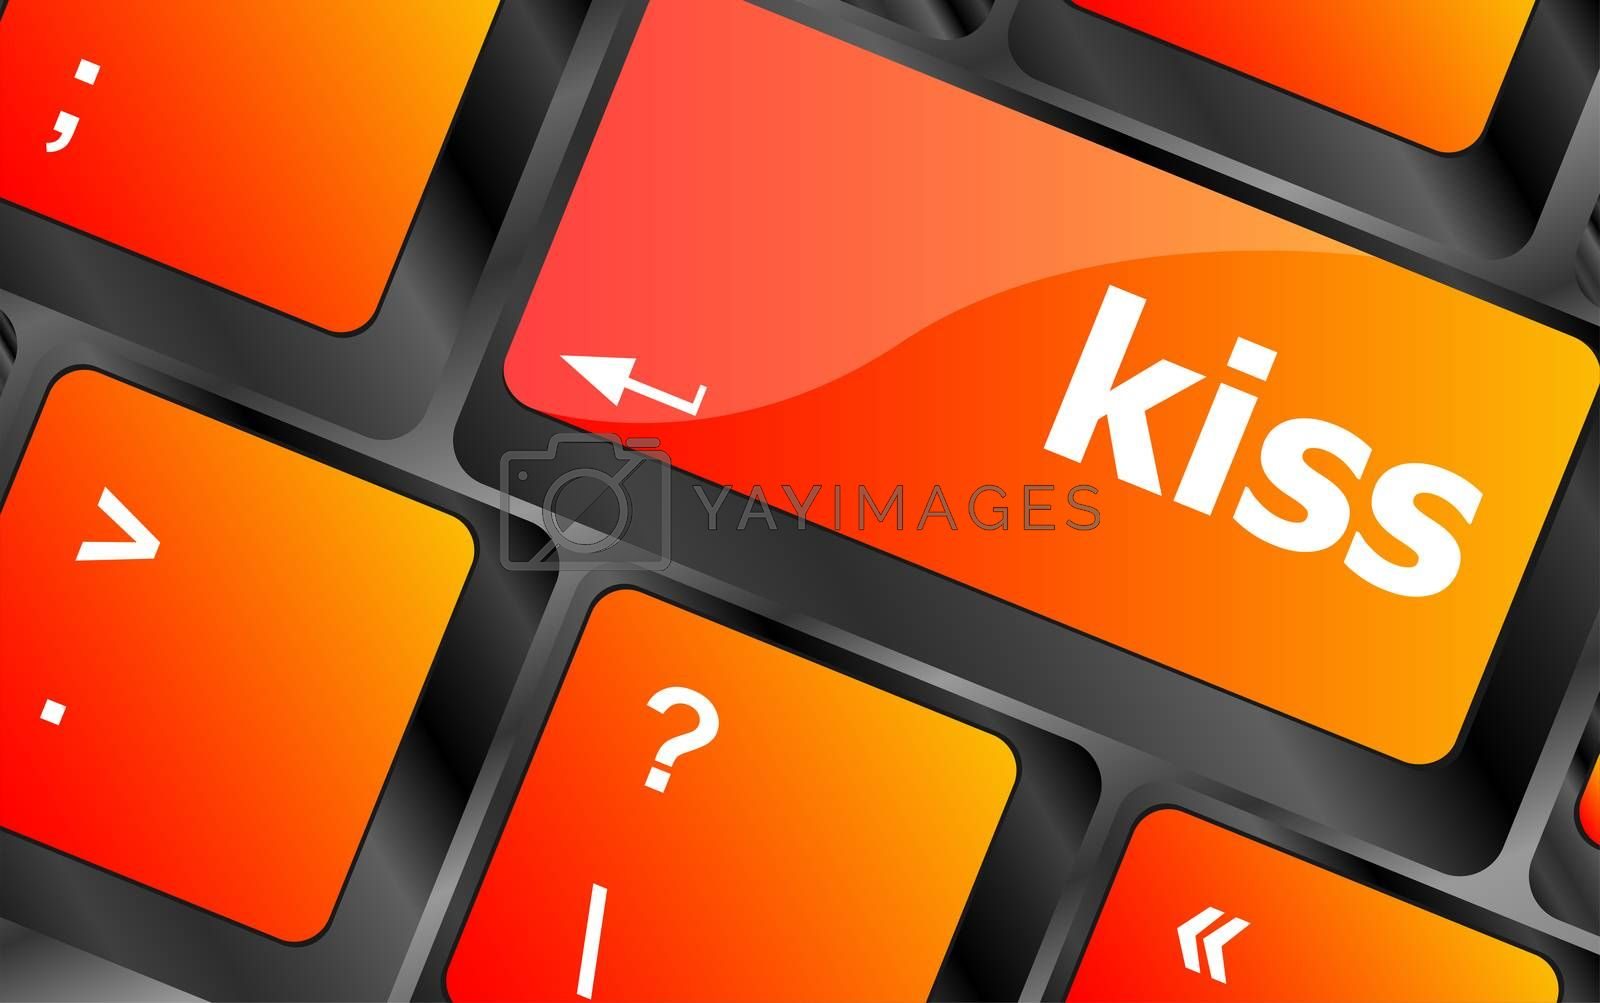 Key with the word kiss on it, on a computer keyboard. Laptop button